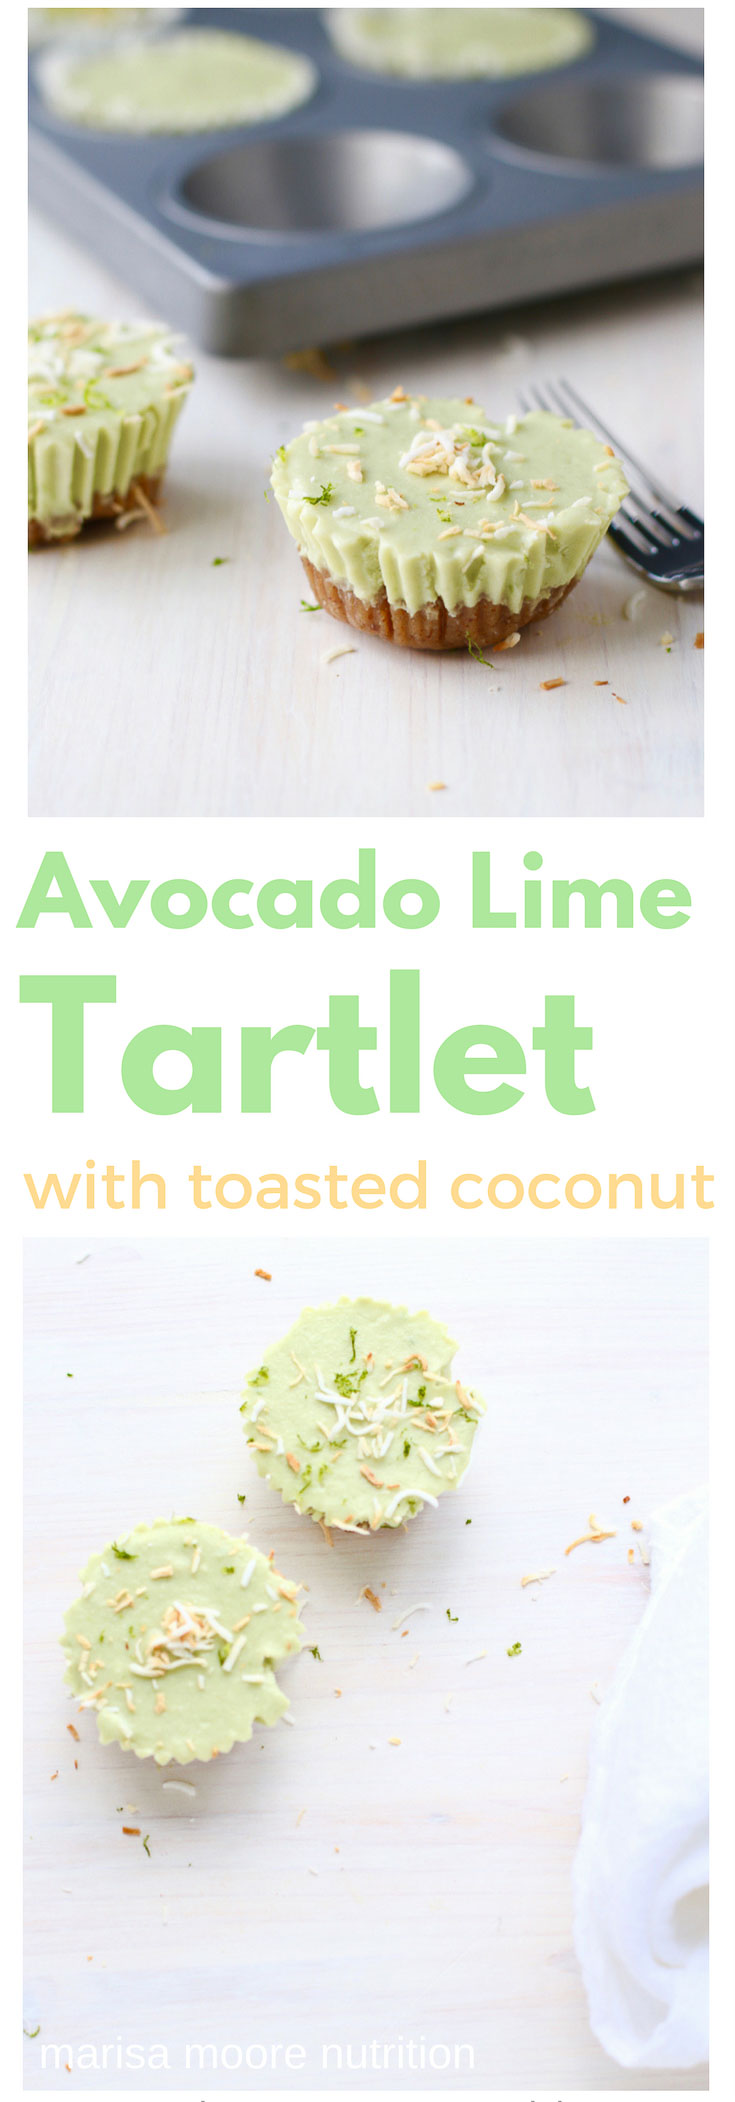 Coconut Lime Avocado Tartlet